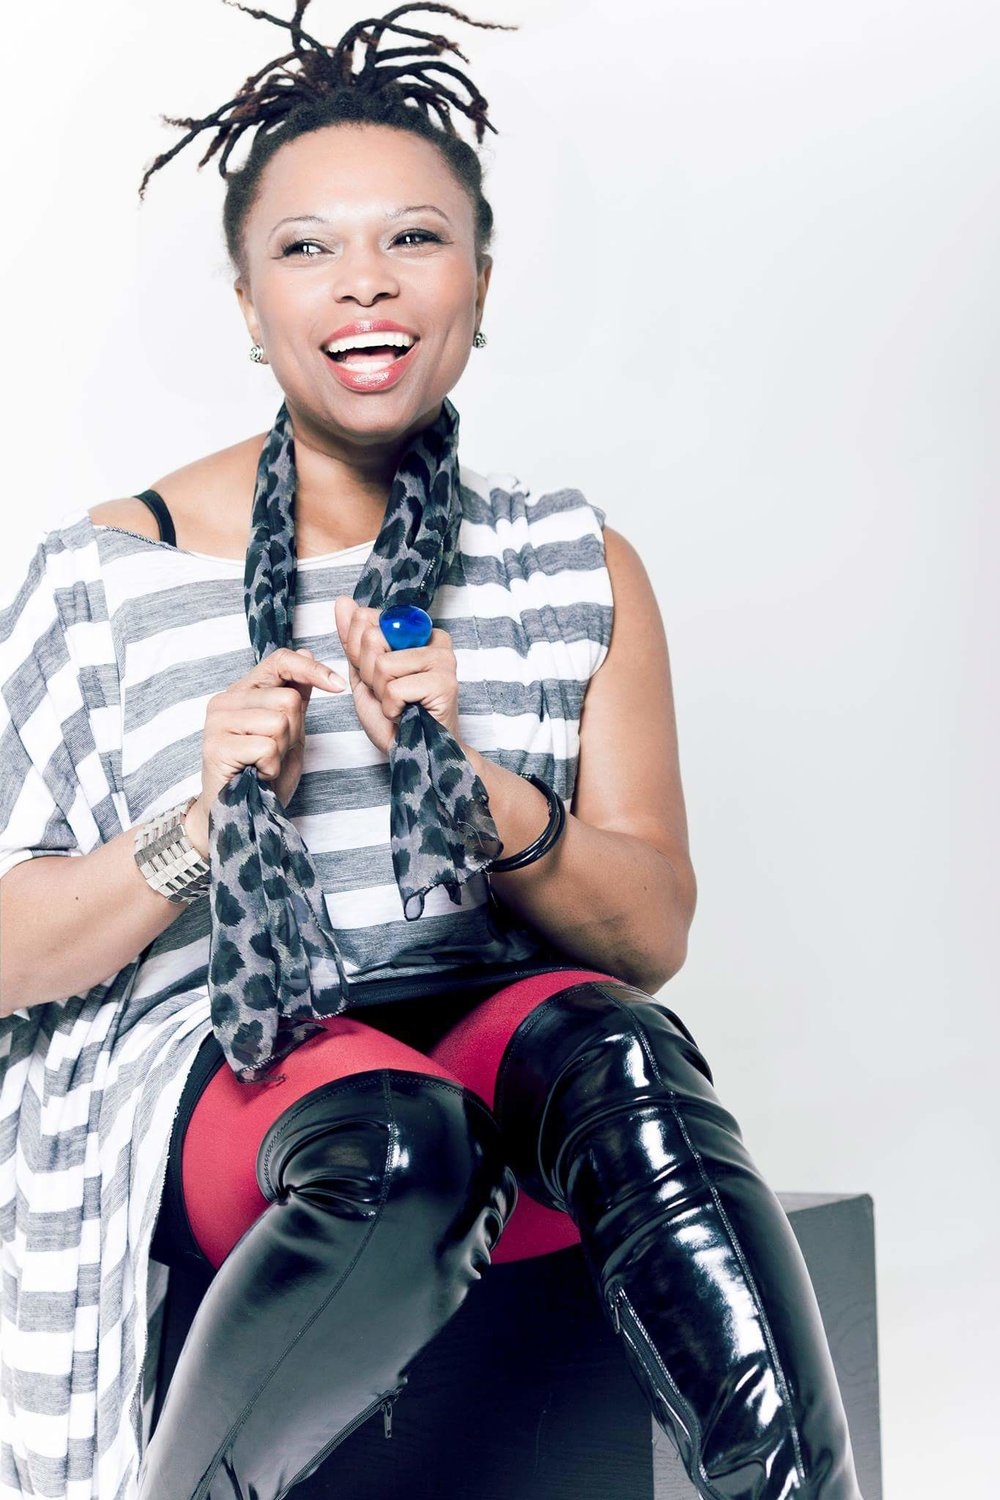 DJ Lady D, Producer, DJ and owner of D'lectable Music